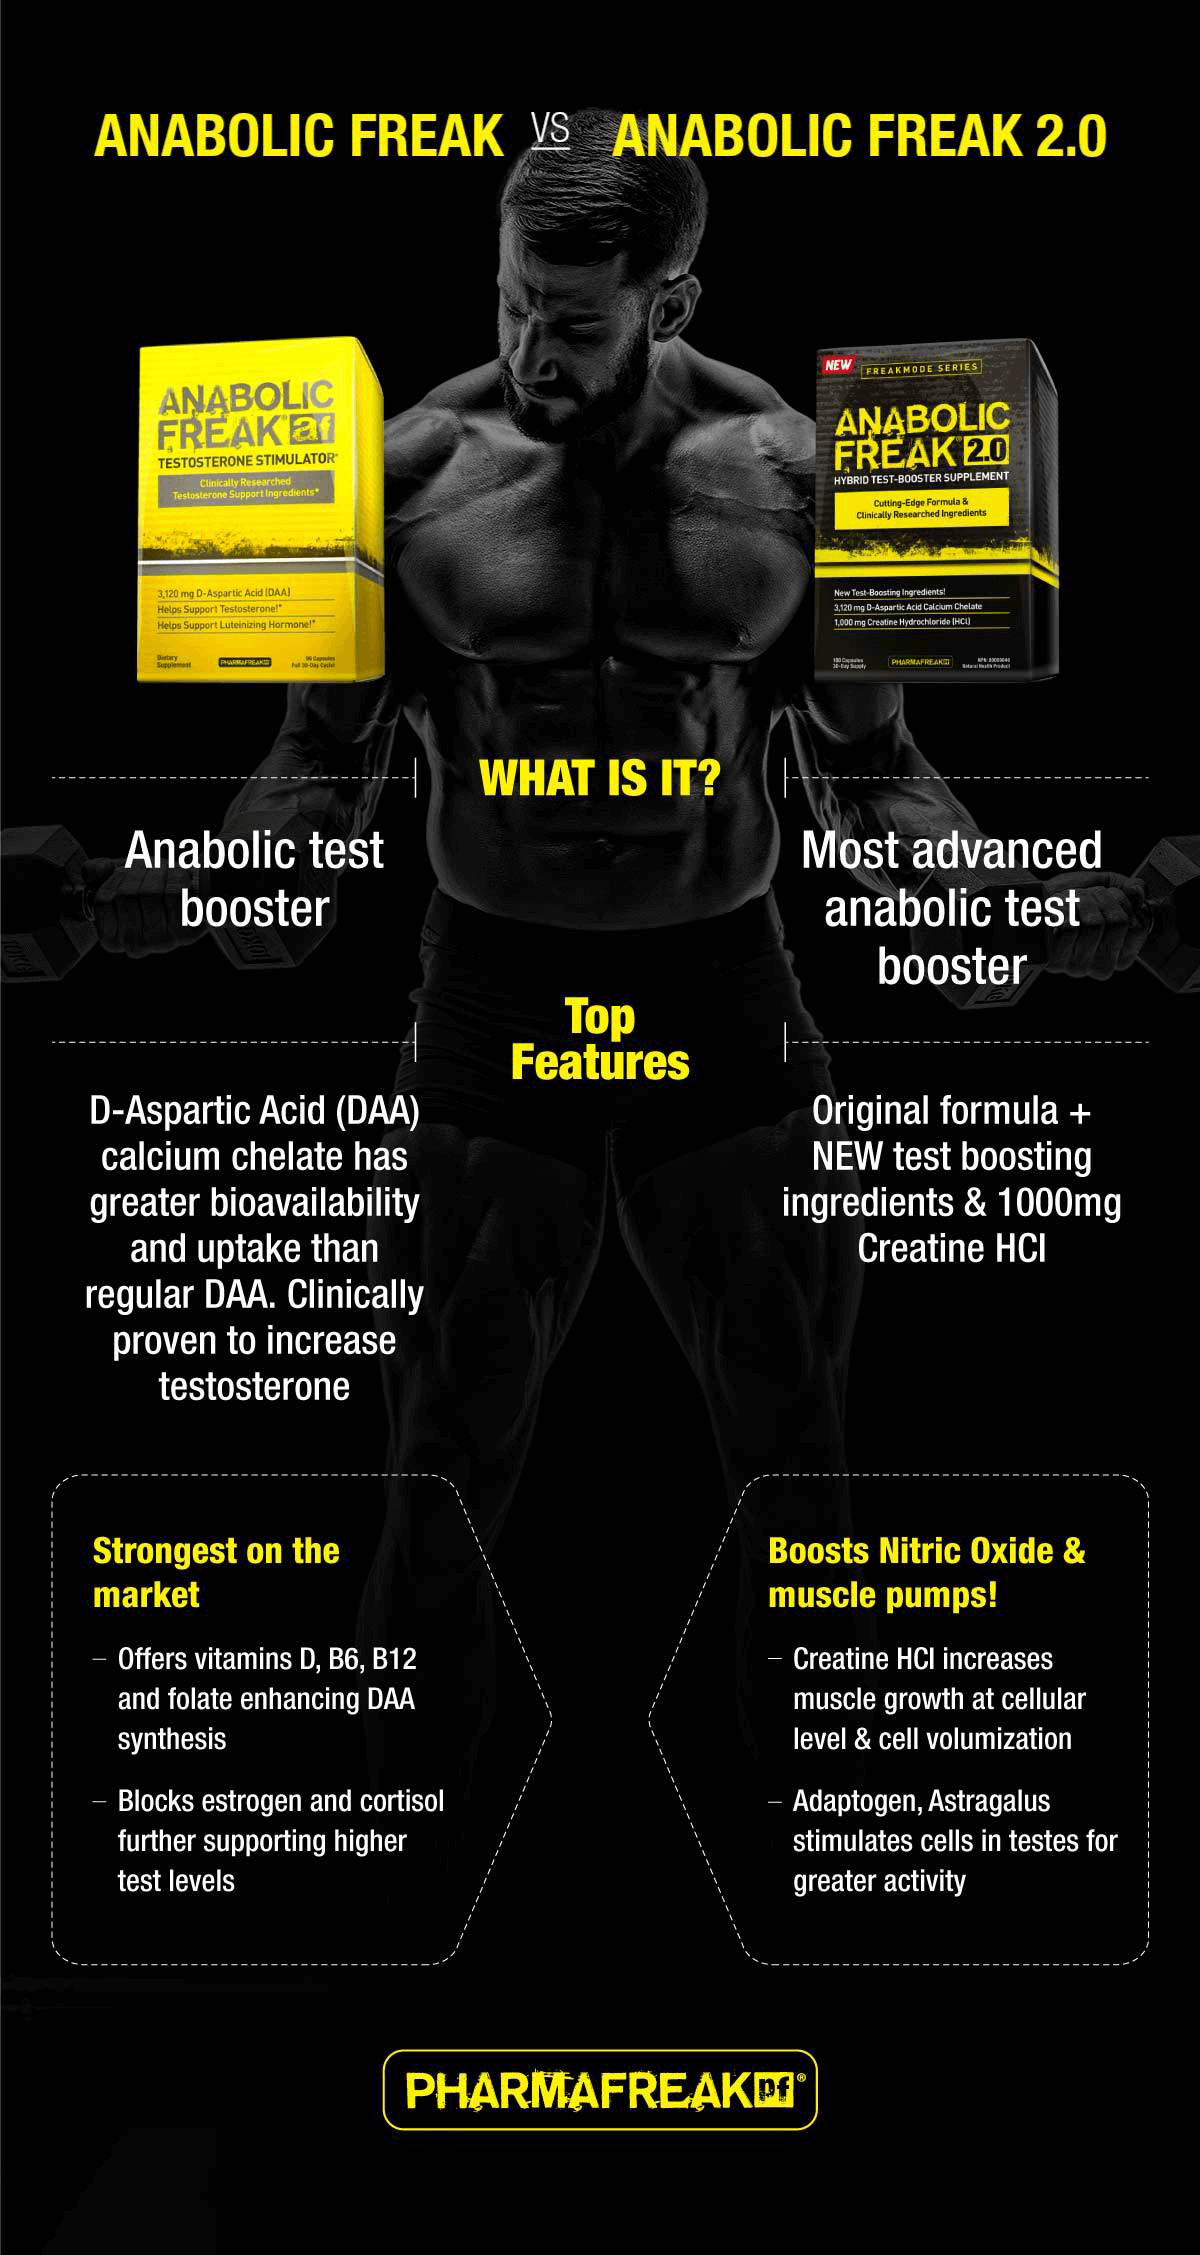 Pharma Freak Anabolic Freak 2.0